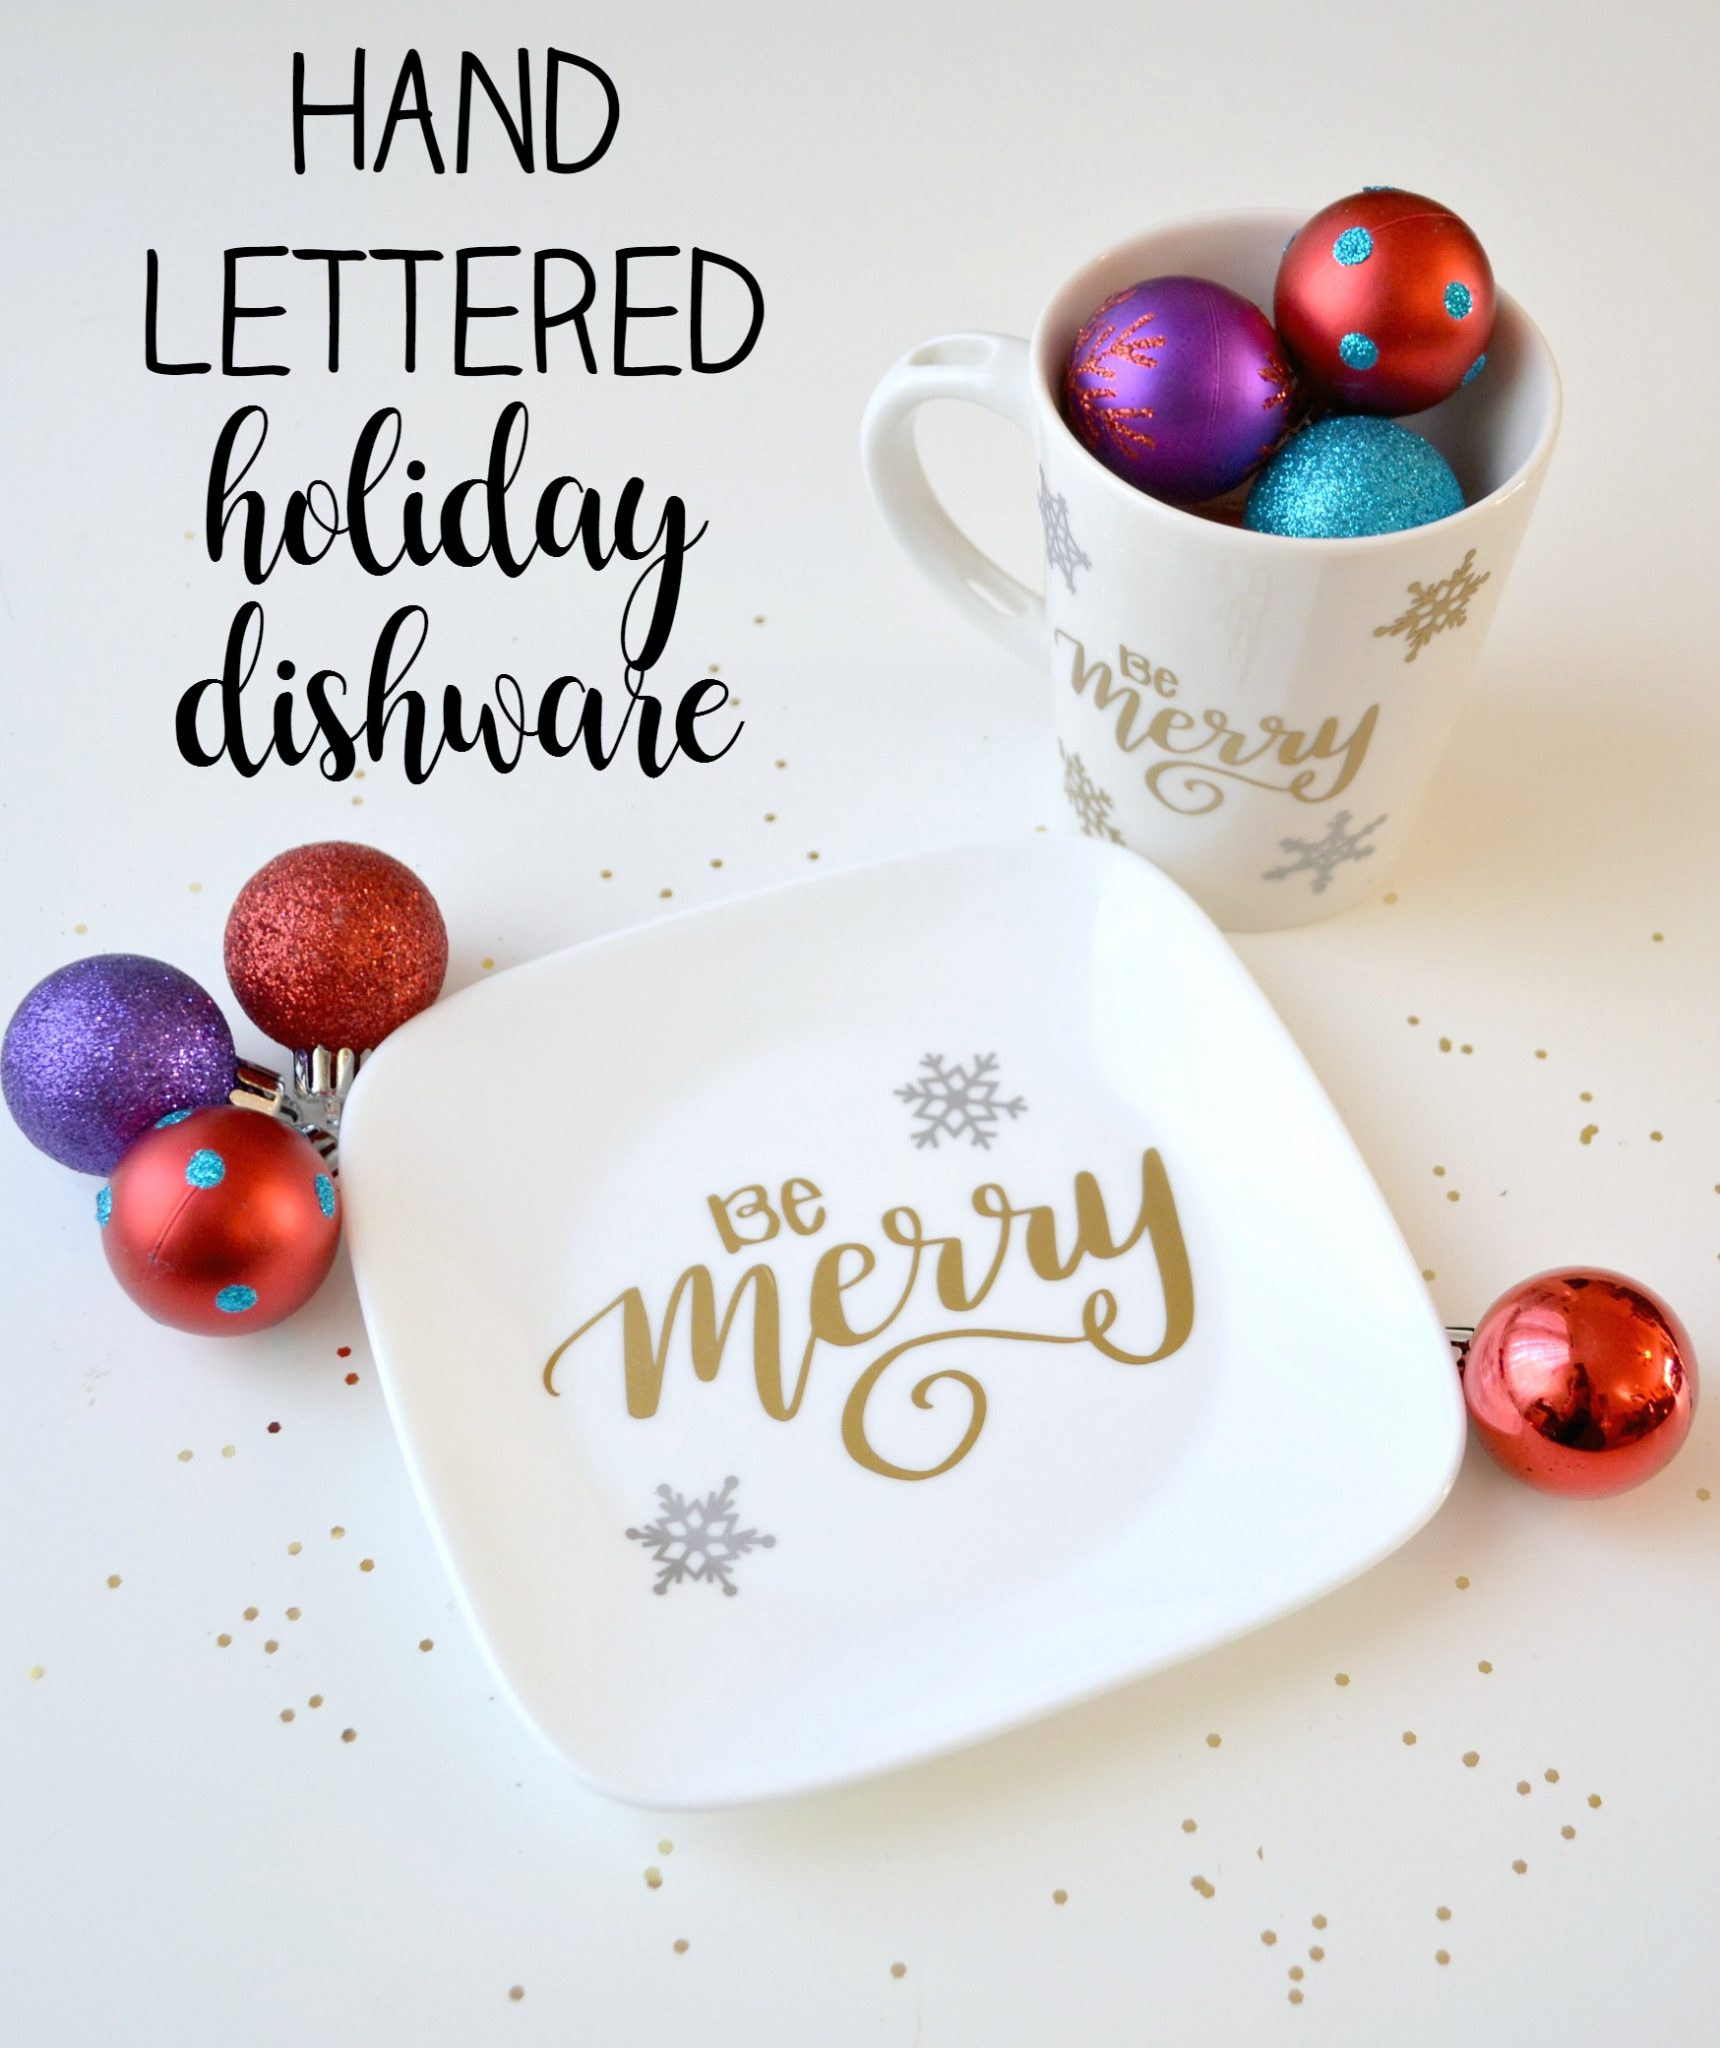 Hand Lettered Holiday Dishware